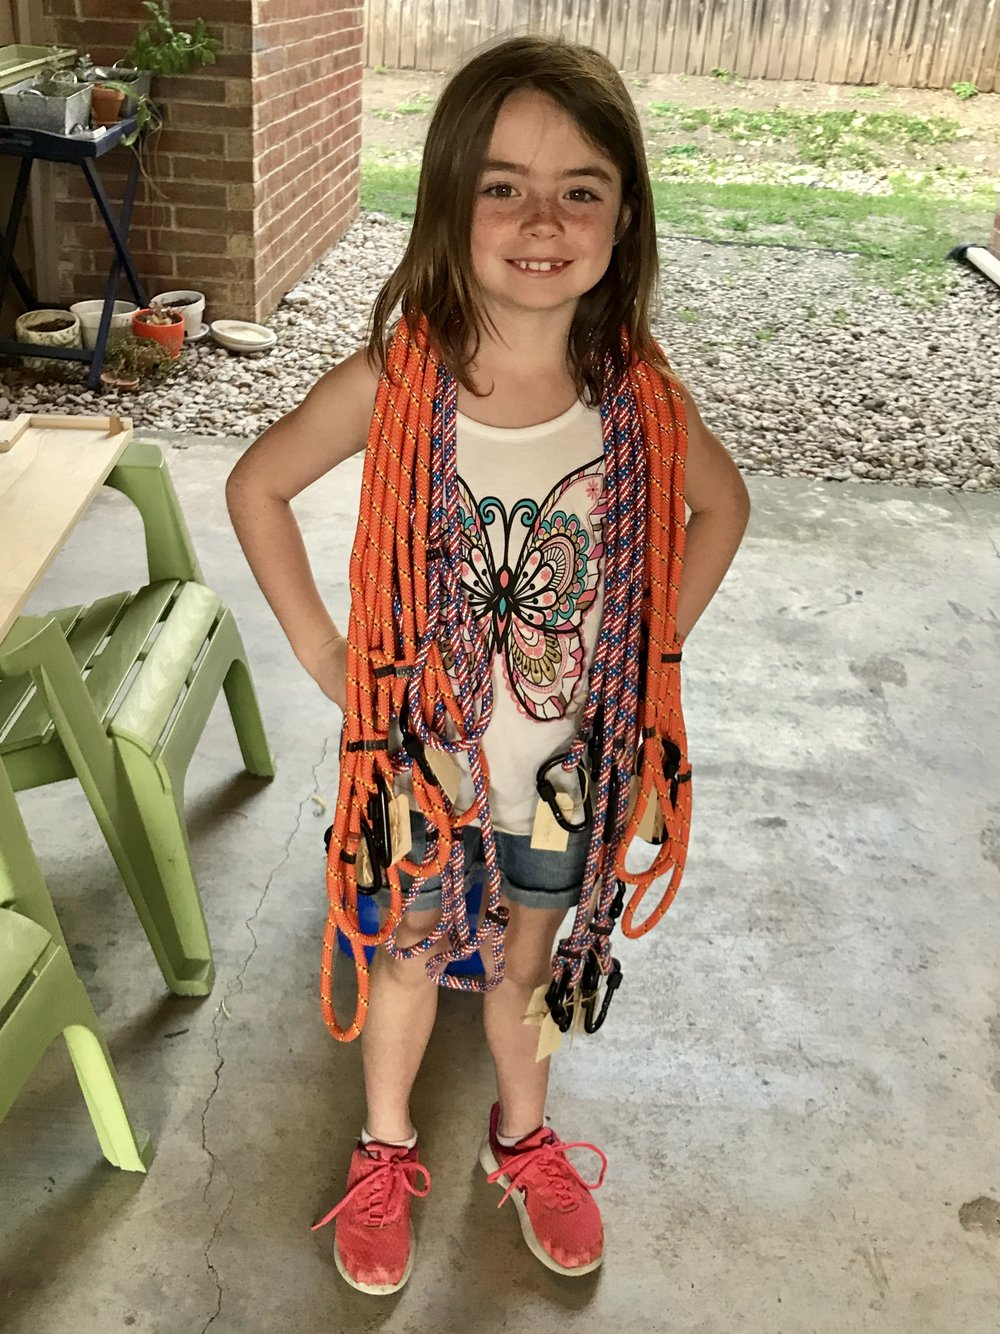 Ameila - 8 yr. old, Founder of Loco Leashes, student at Eanes Elementary Amelia was mentored by Britney Schielack, co-founder of the Platform..